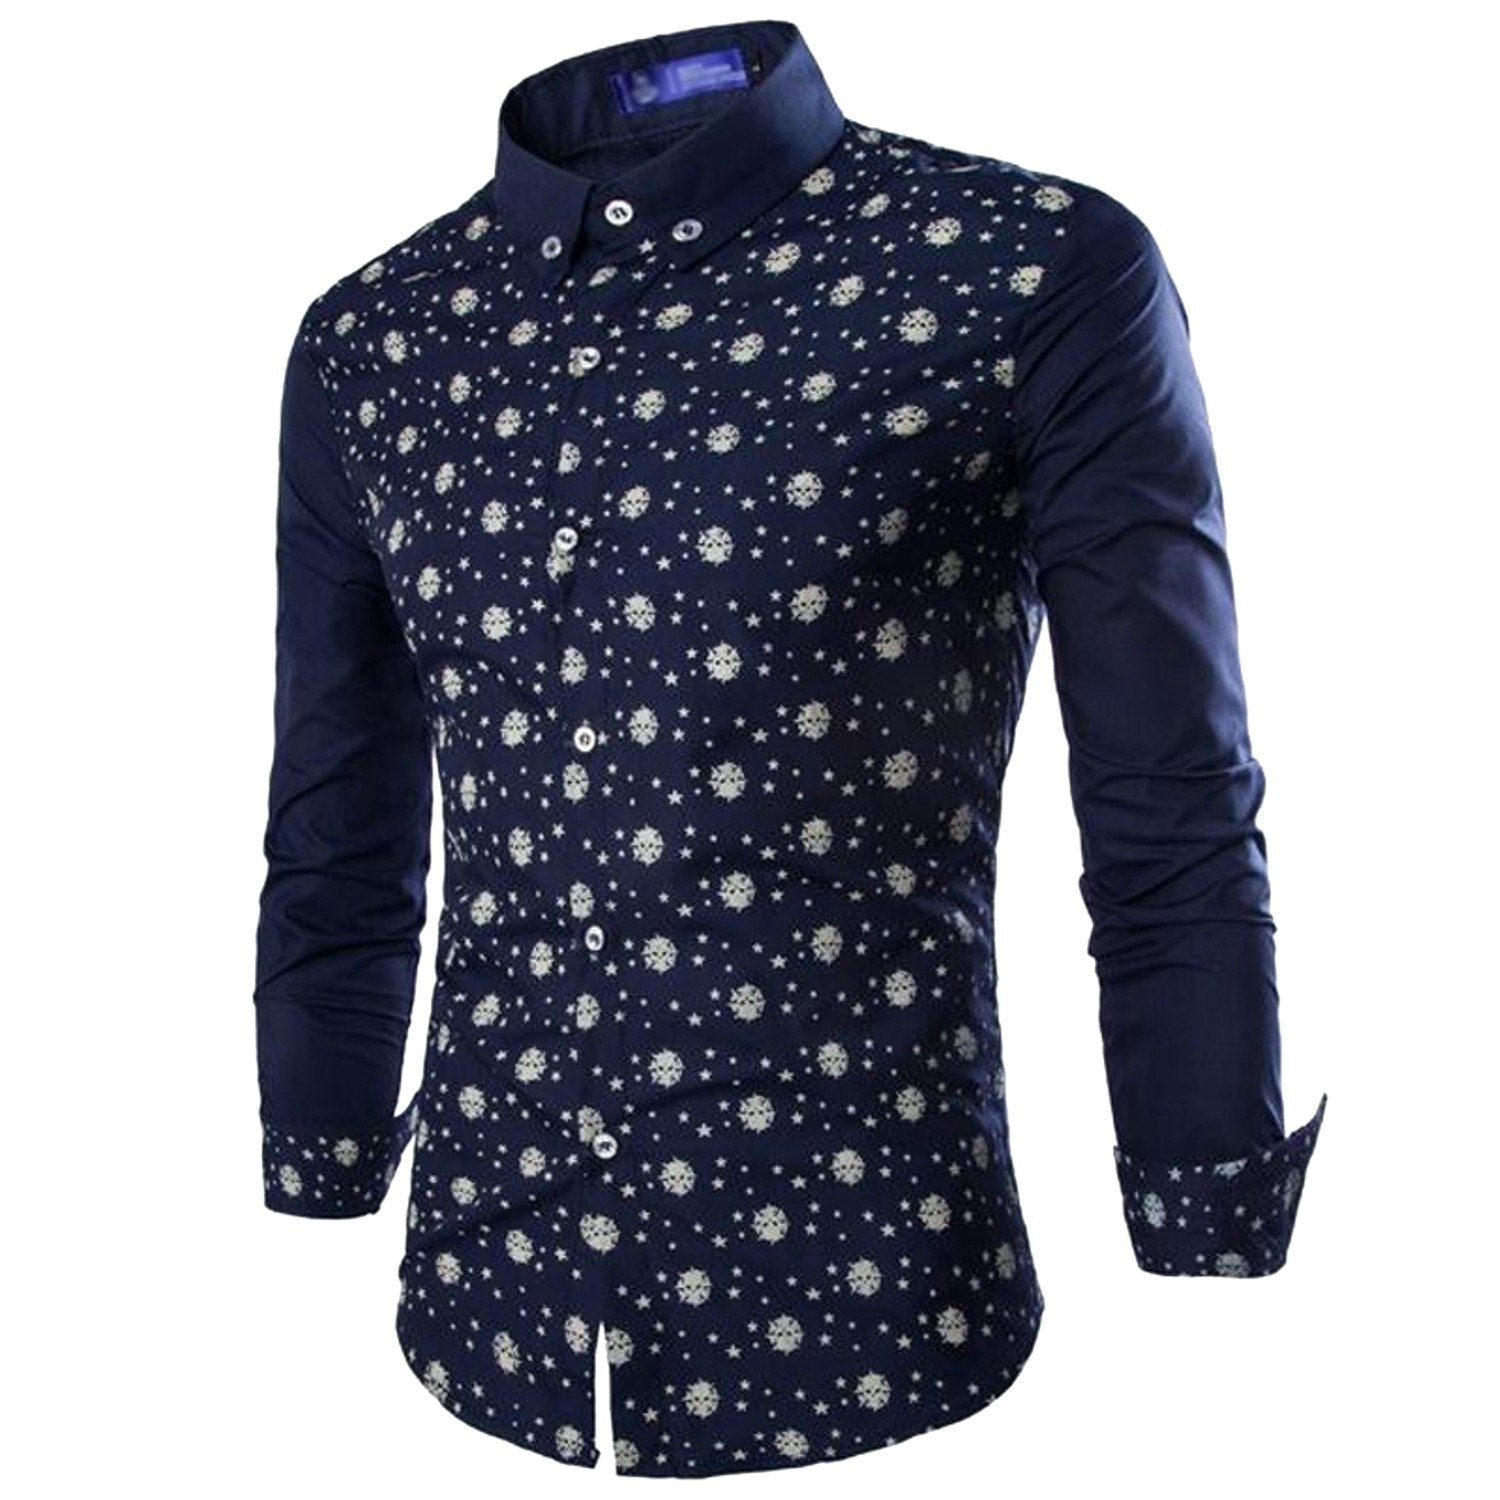 61fdfde9 ... New Branded Men's 3 Printed Cotton Casual Shirts for ...